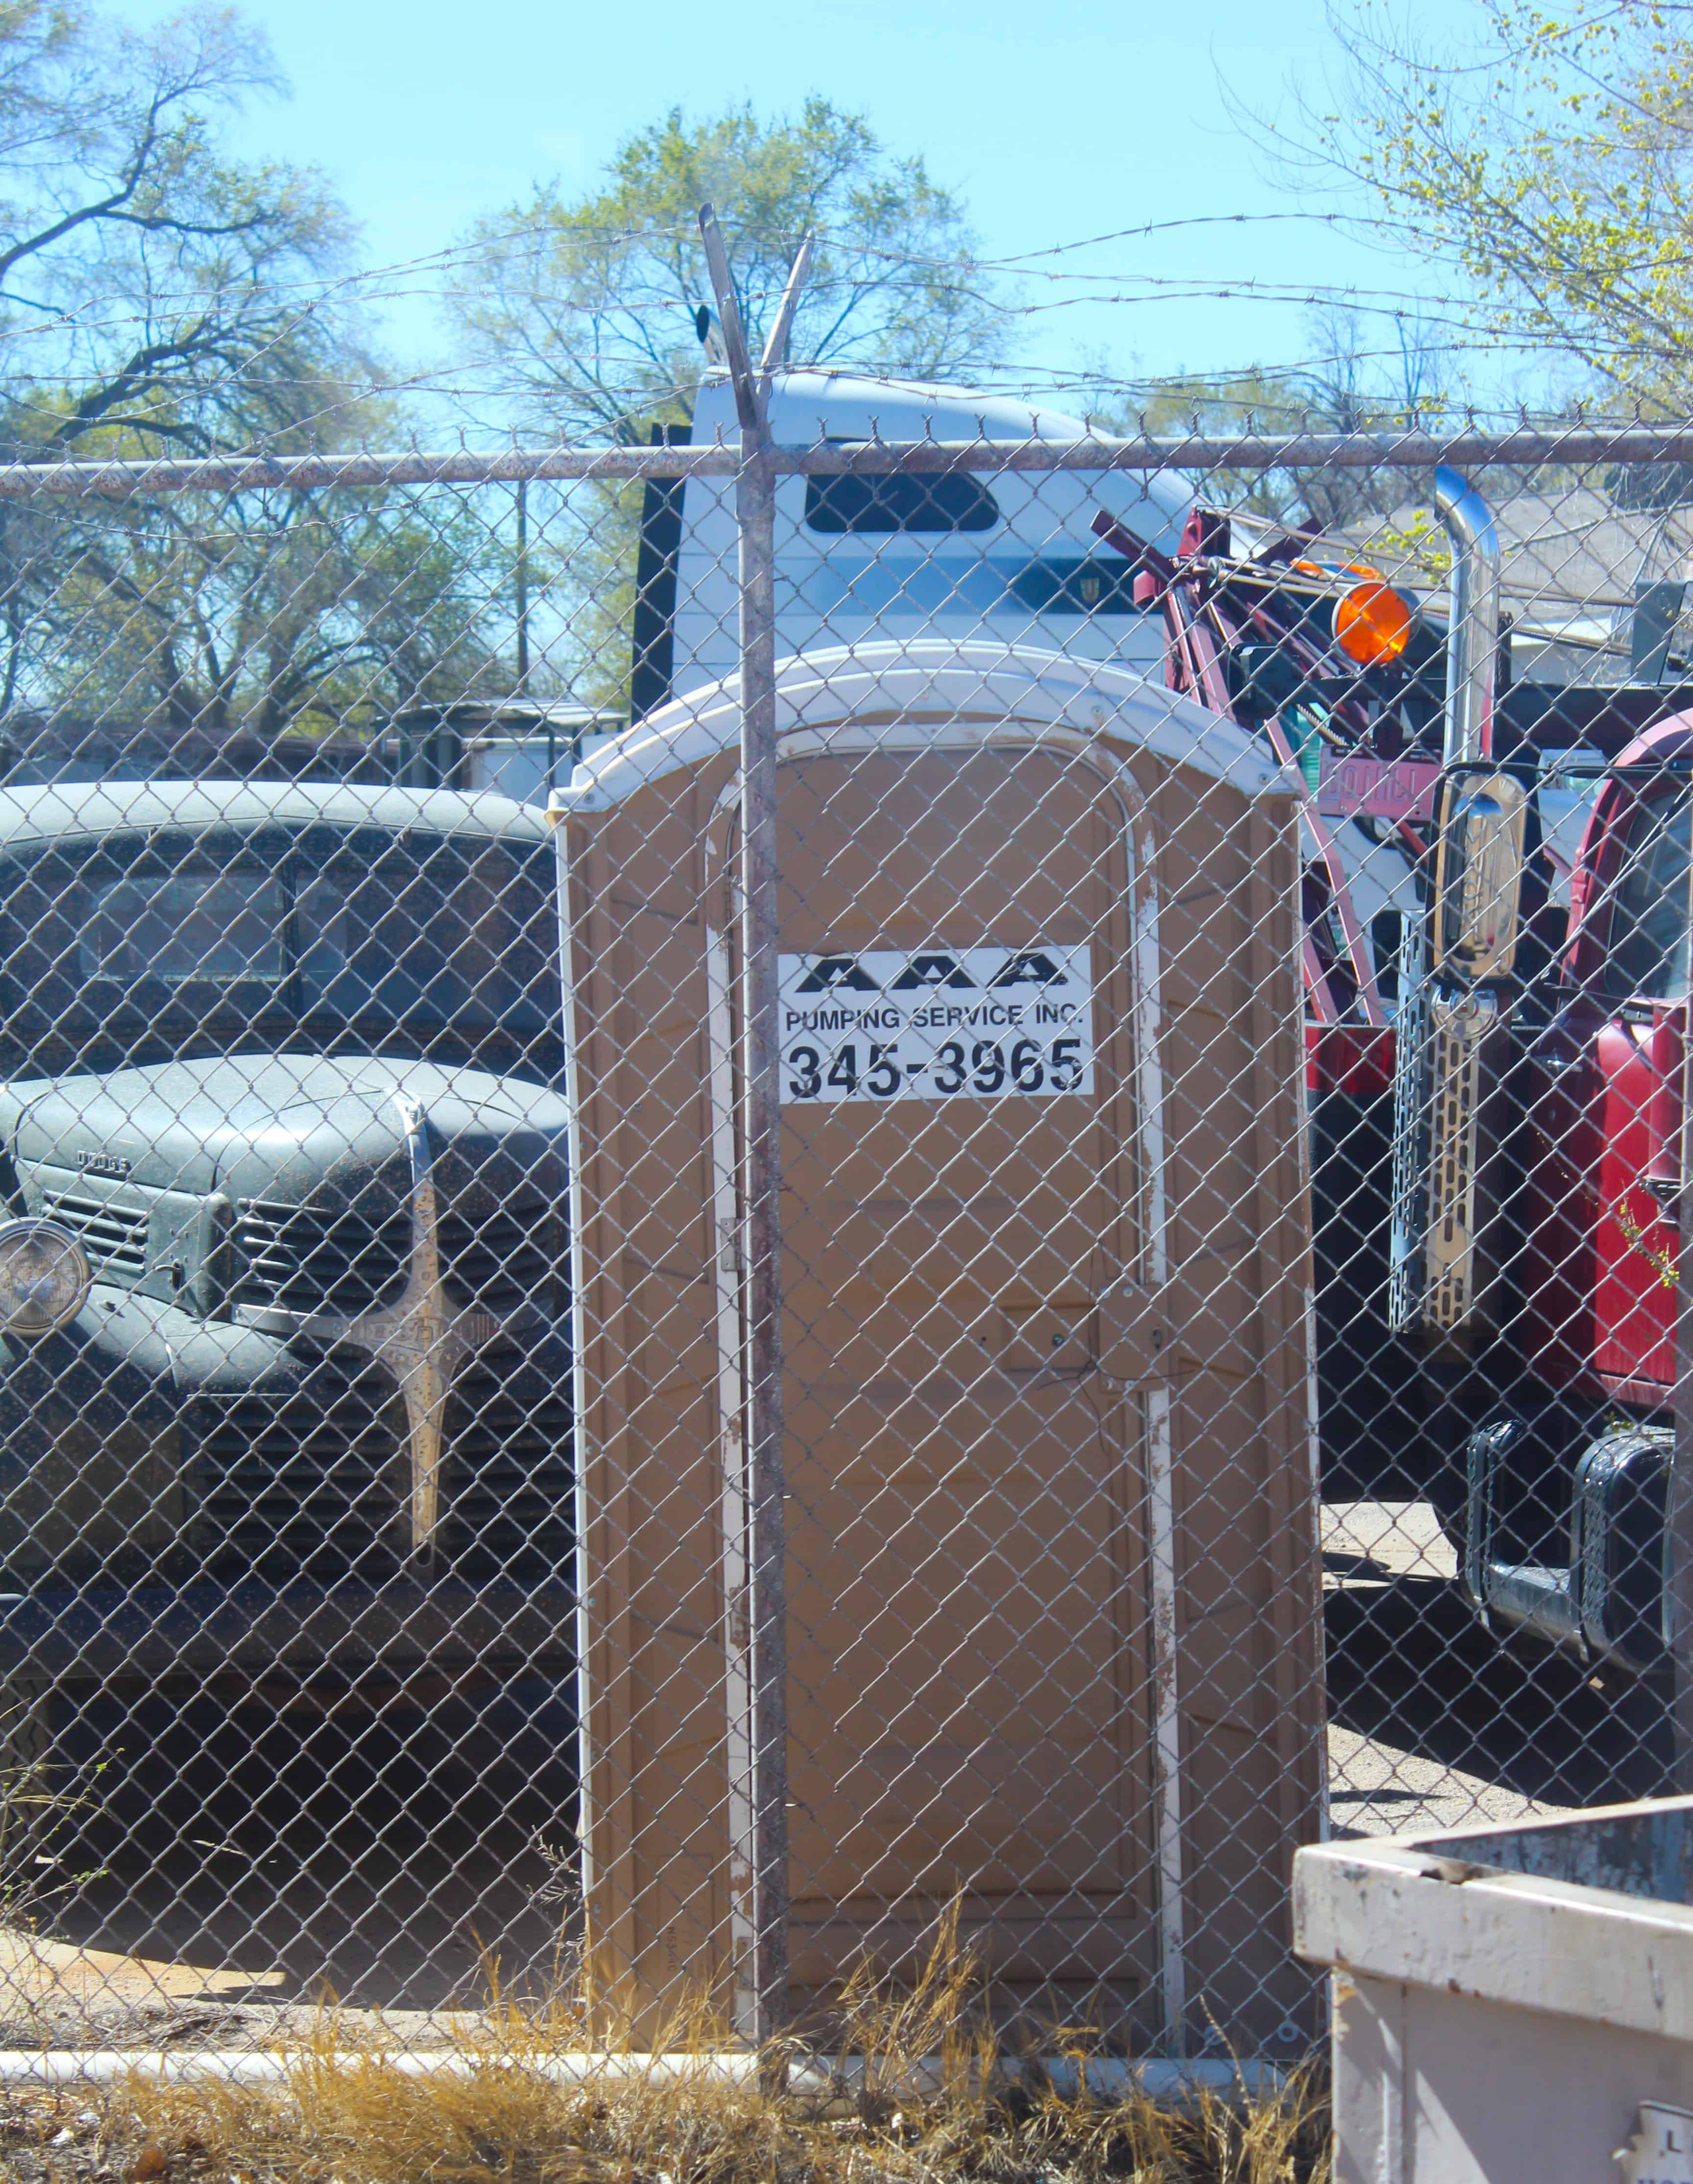 The Infamous Port-a-Potty at the Breaking Bad Junkyard